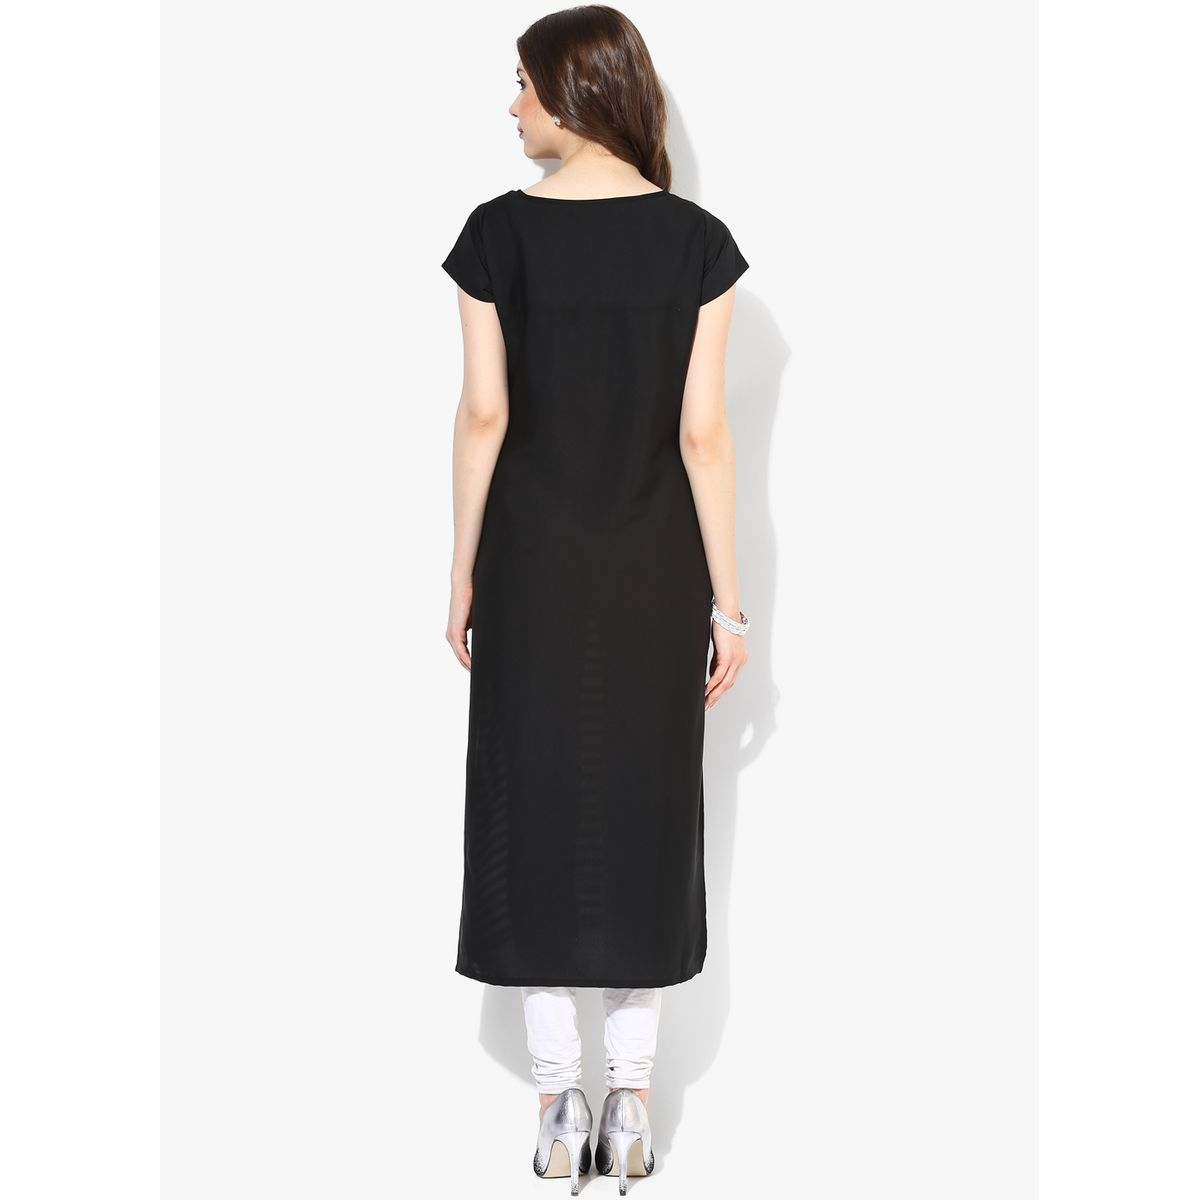 THE BEBO BLACK CREPE PRINTED LONG STRIPED KURTI